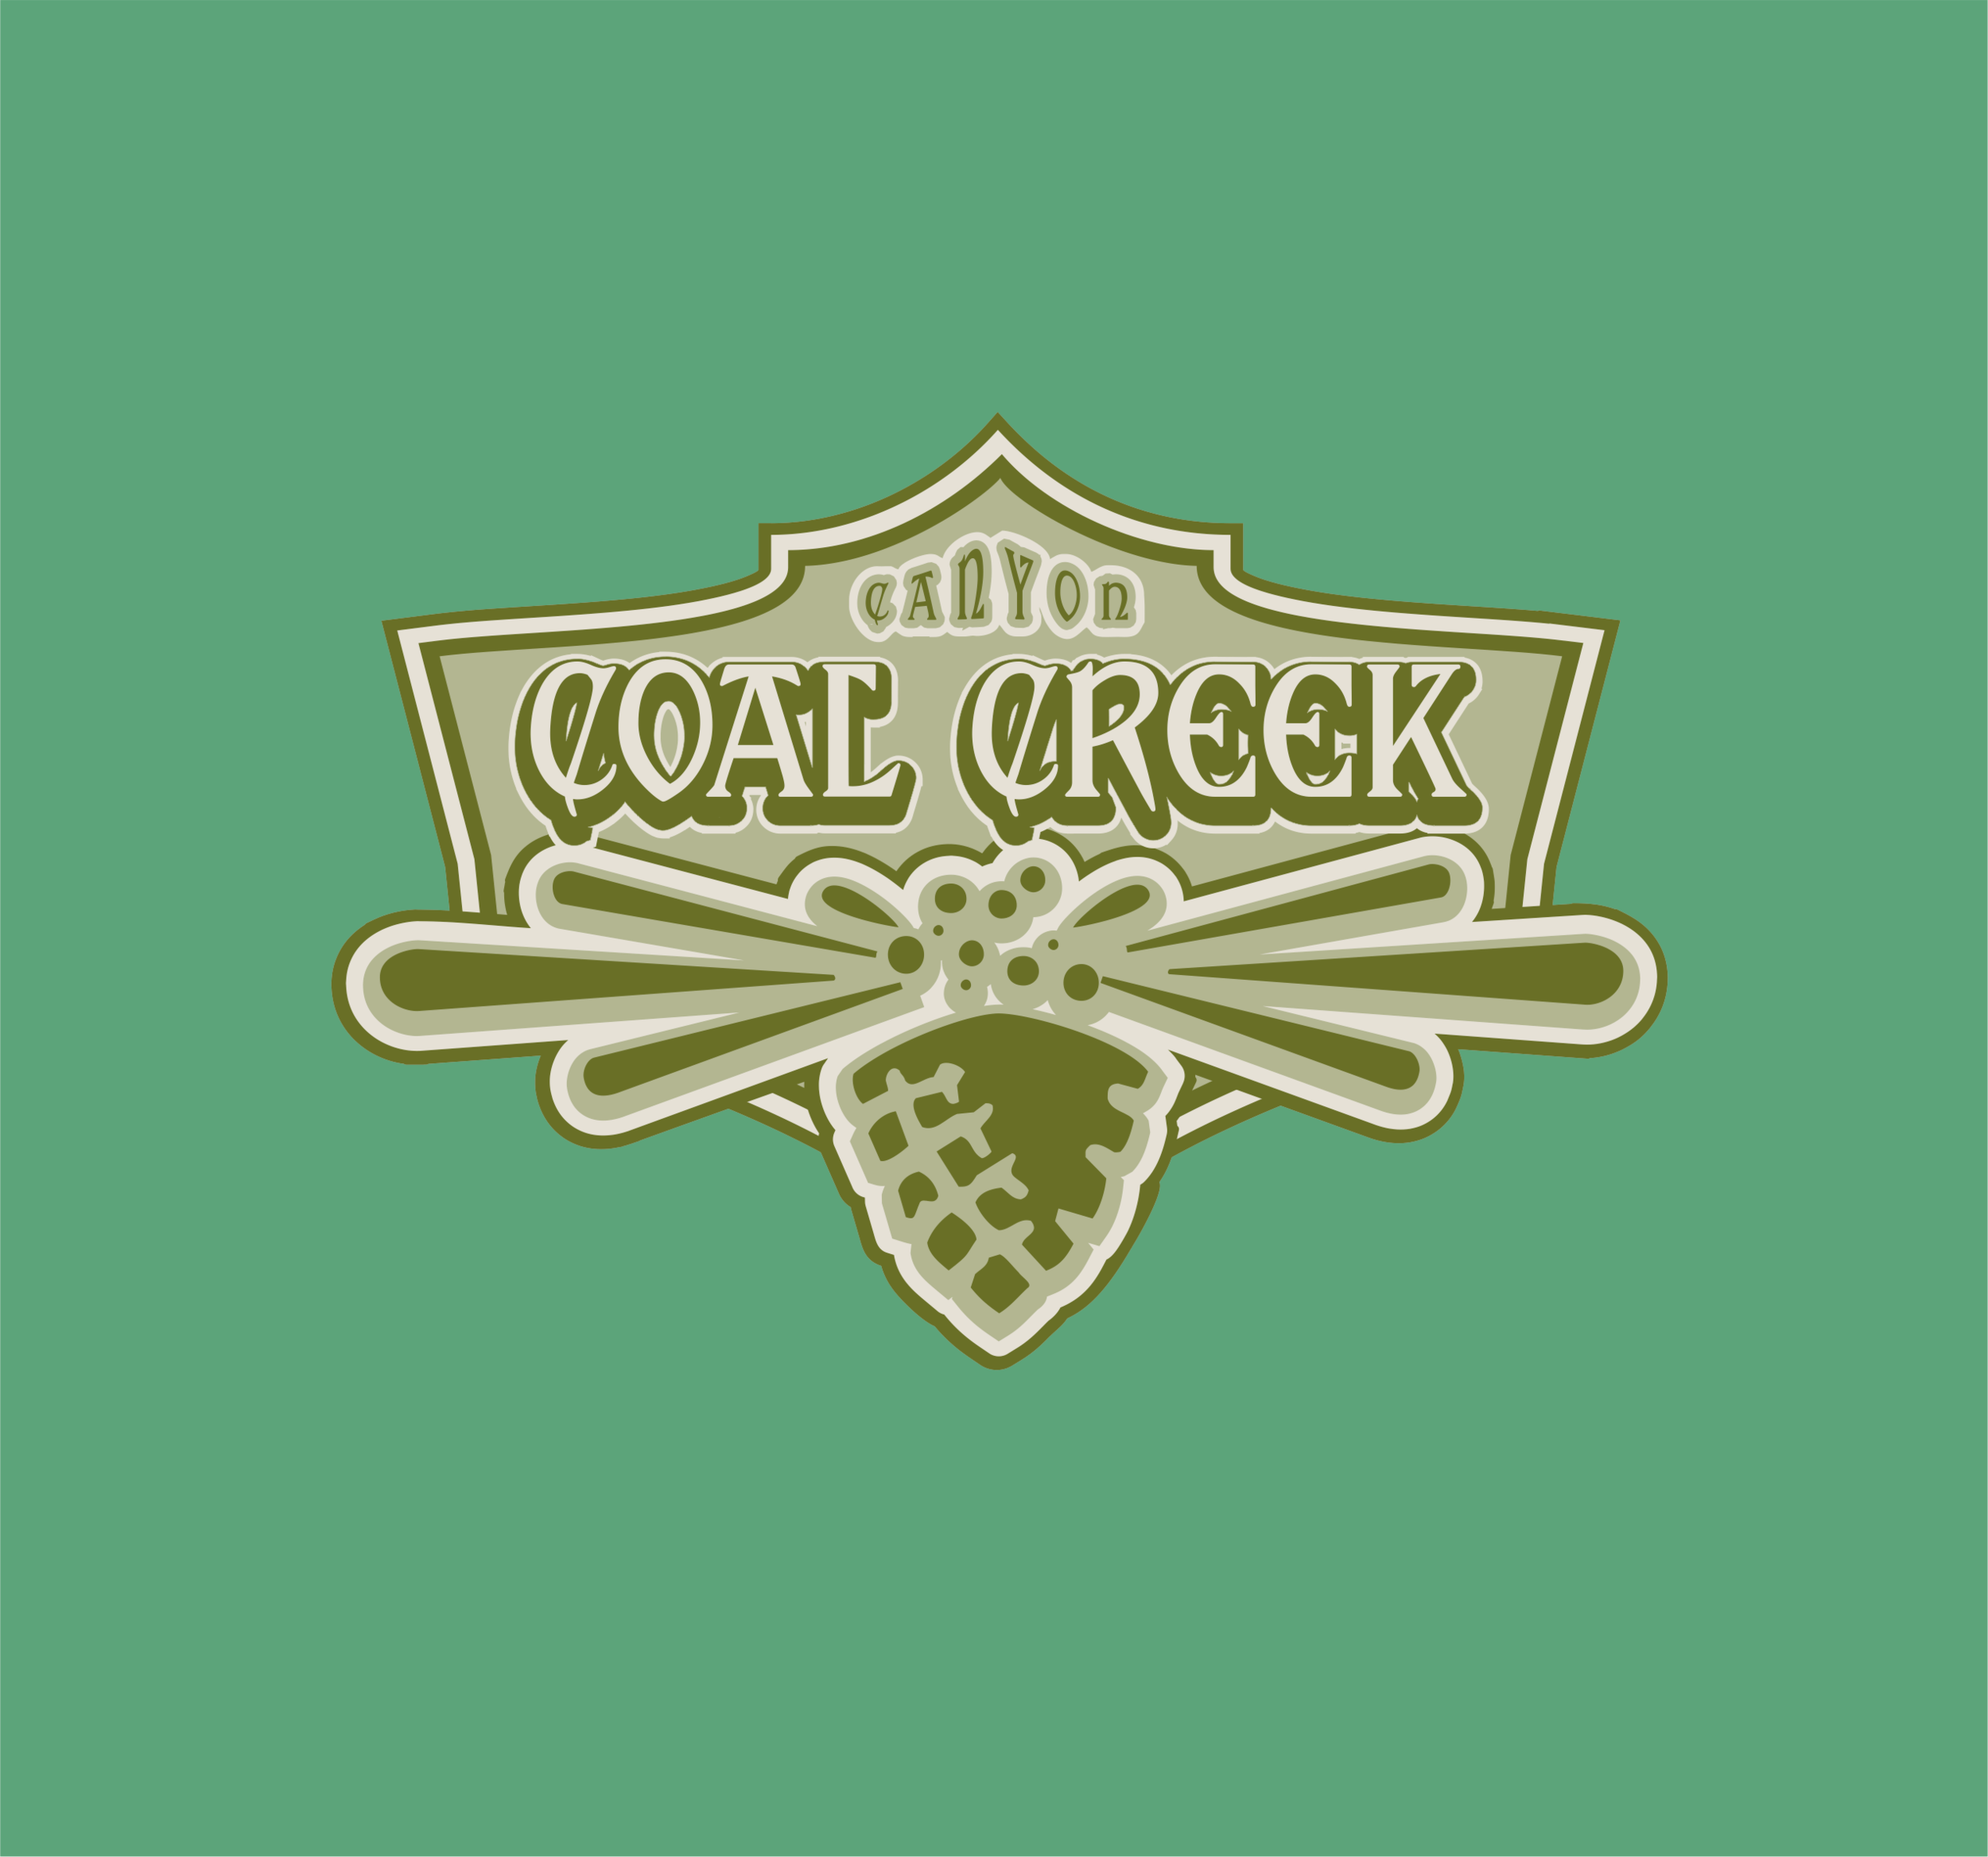 Coal Creek3.png